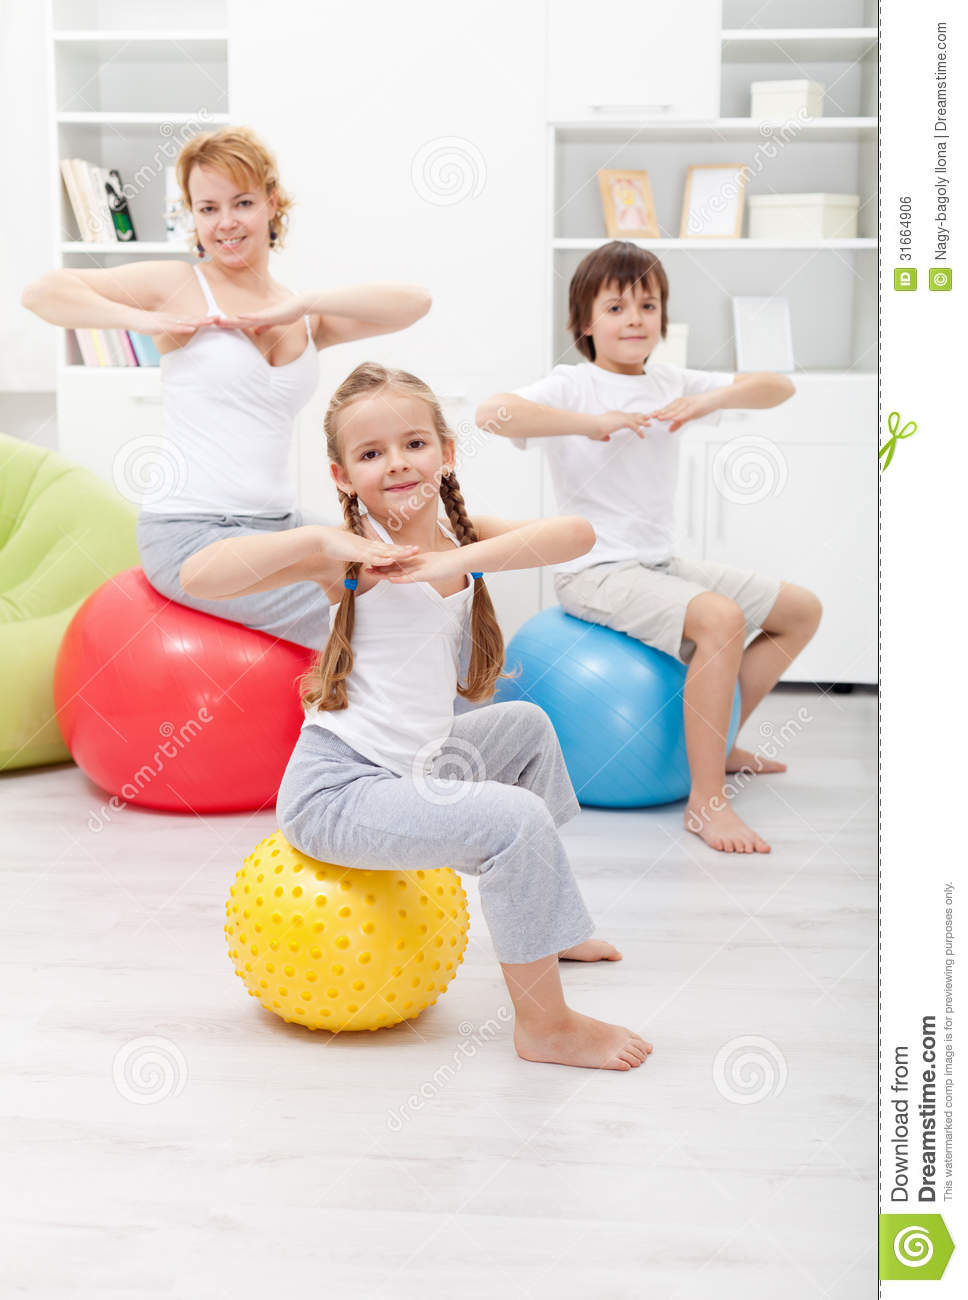 gymnastic exercise with the kids - Exercise Pictures For Kids